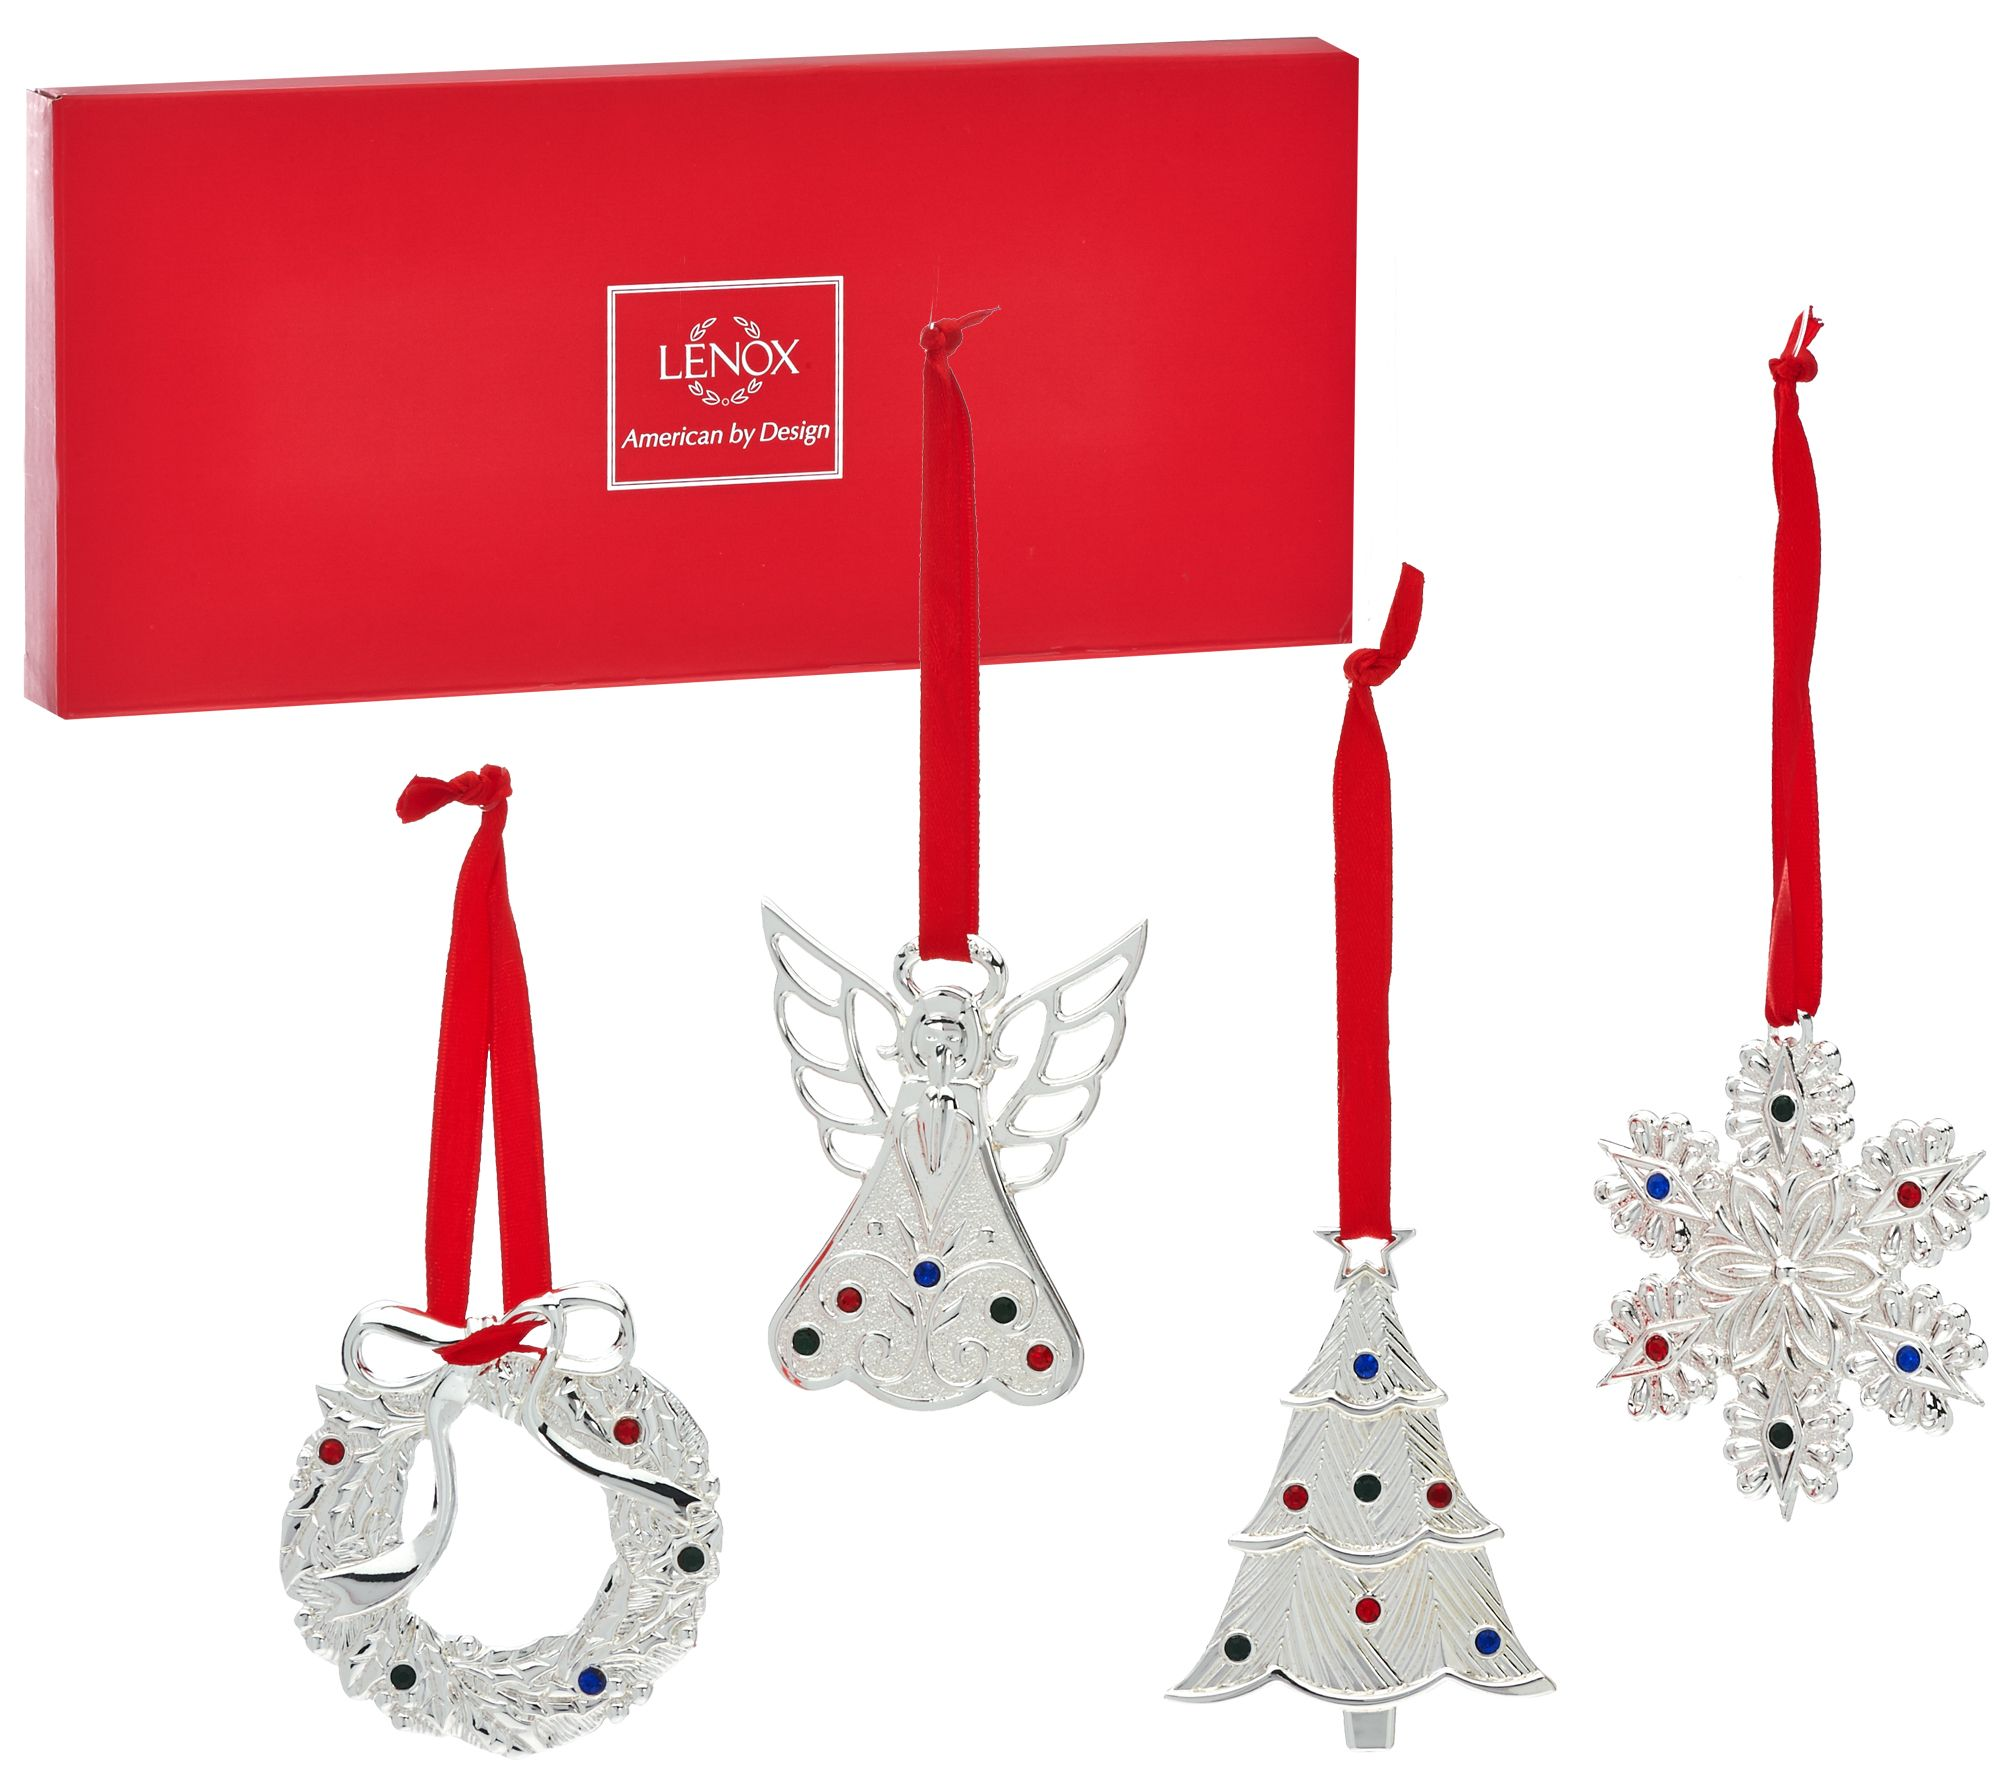 Glass christmas tree with ornaments miniature - Lenox S 4 Silver Plated Mini Holiday Ornaments With Gift Box H206746